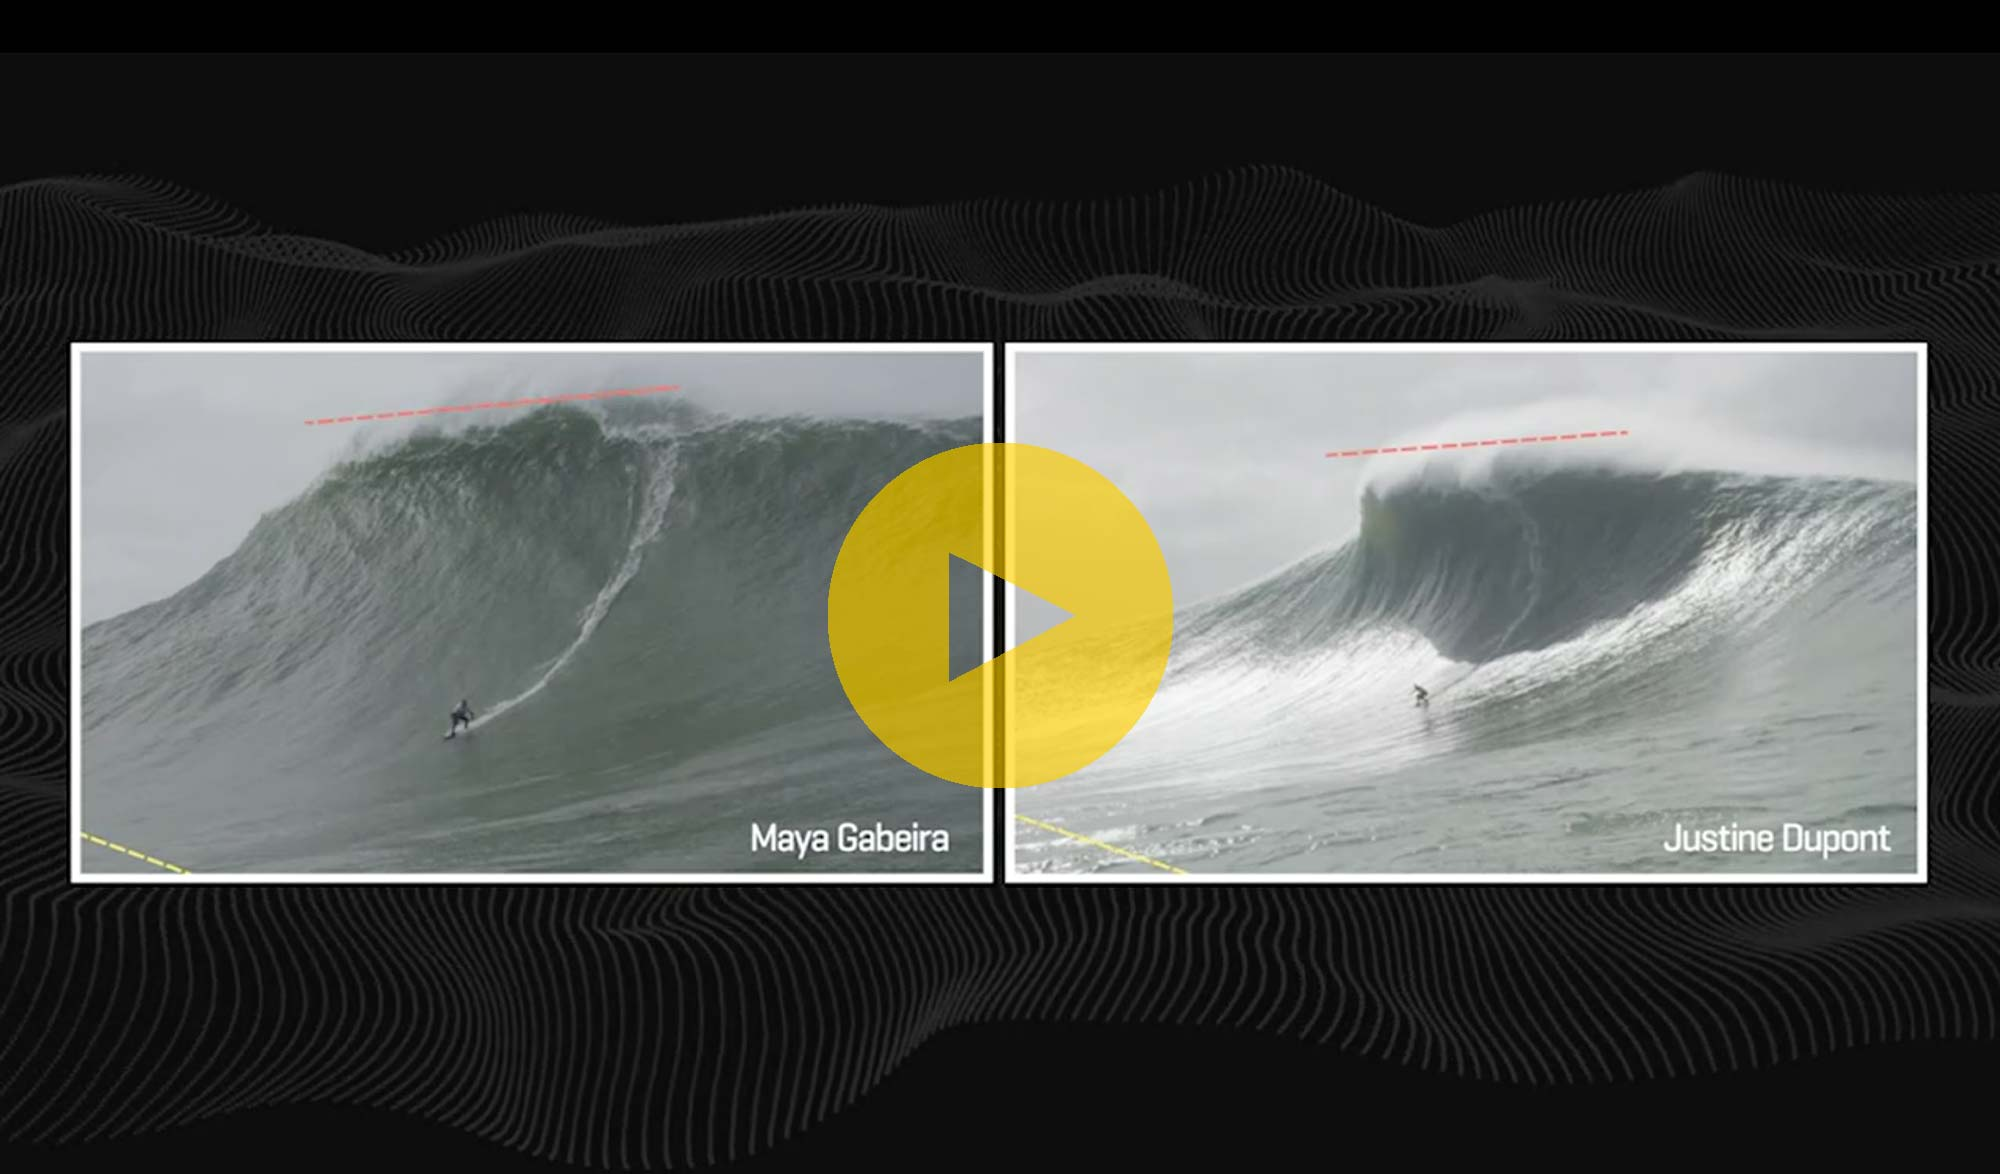 the-science-behind-who-surfed-the-biggest-wave